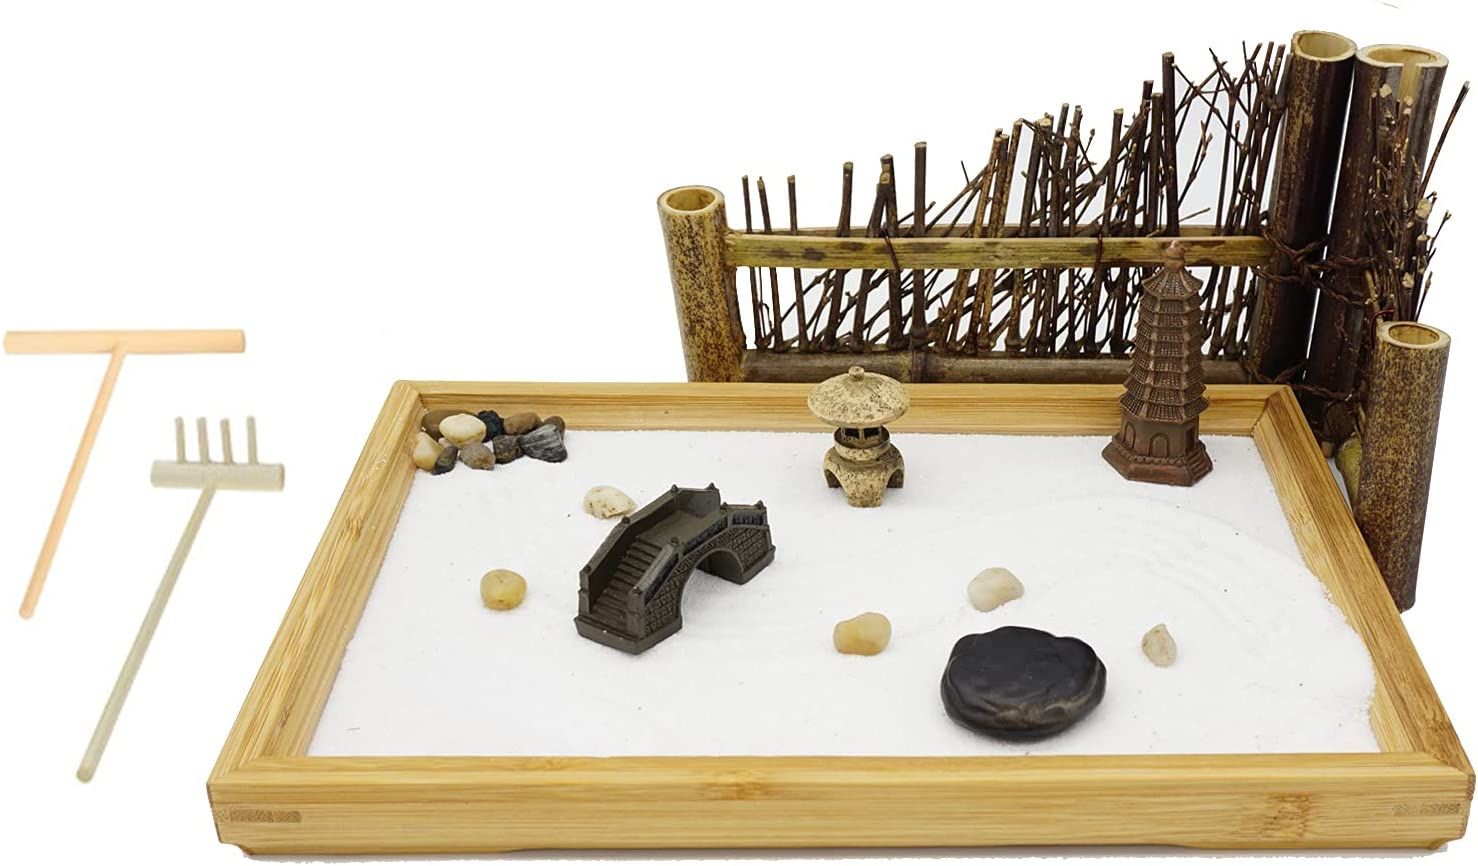 Japanese Zen Garden - Home & Office Desk Mini Garden with - 11.1x7.4 Inches Large - Bamboo Tray-Stone Tower, Stone lamp, Zen Stone- Meditation Gift Set for Relaxation-2 Rake Tools and Zen Accessories